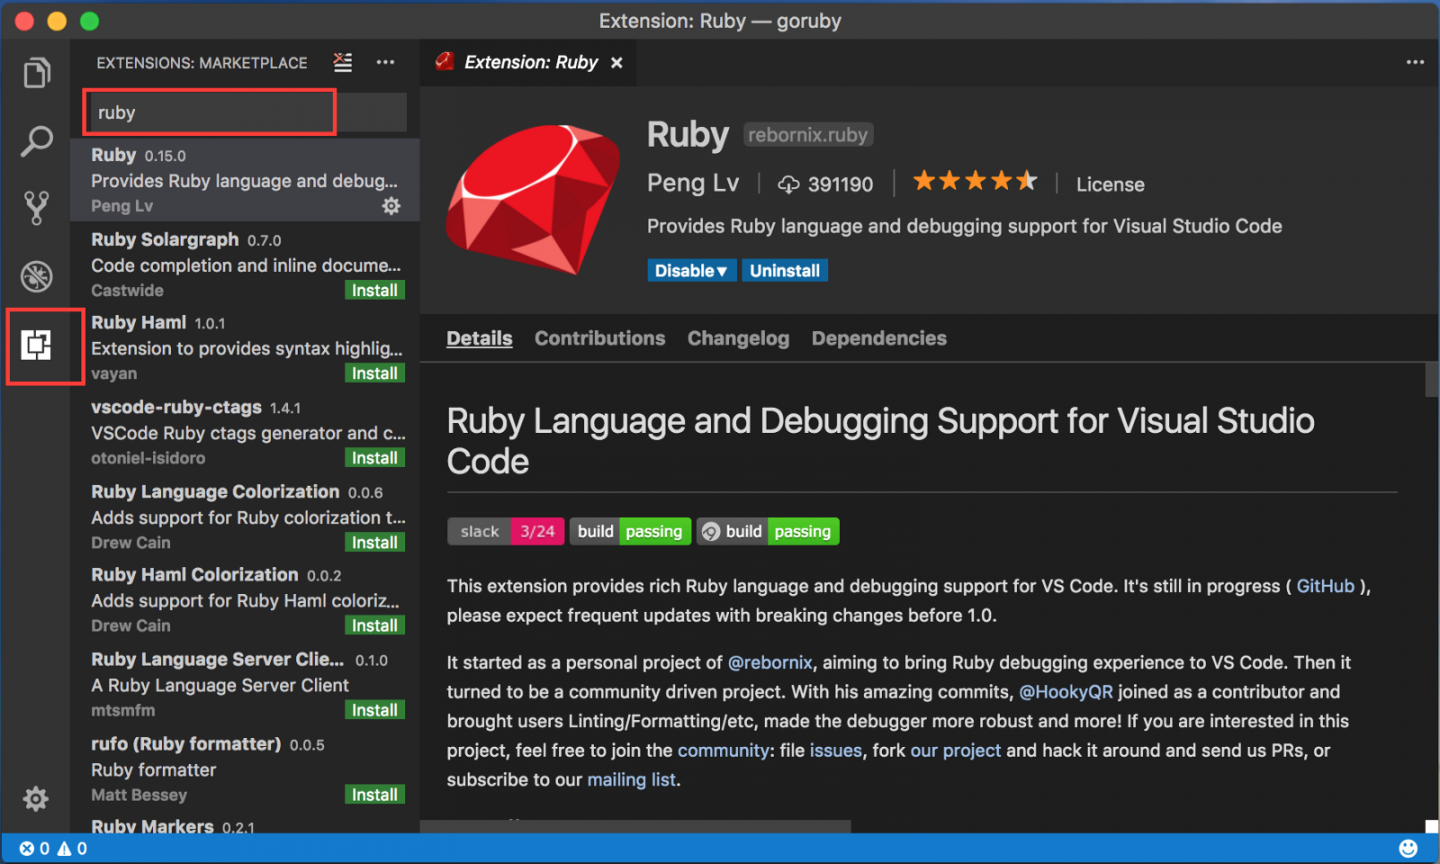 ruby language and debugging support